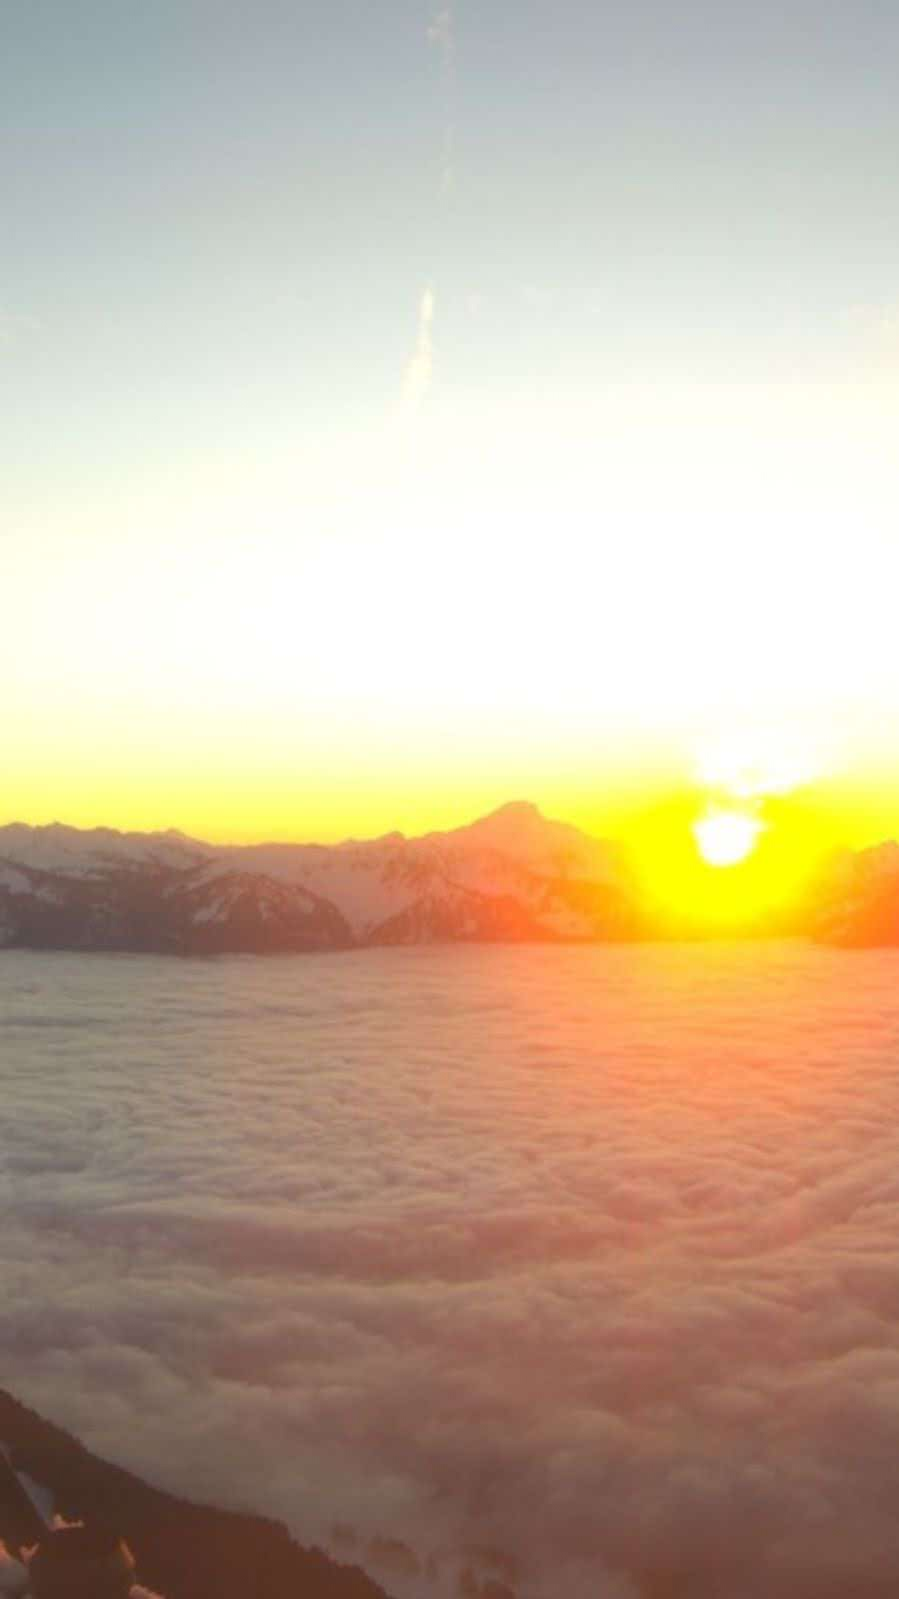 Sunset from above the clouds, Leysin